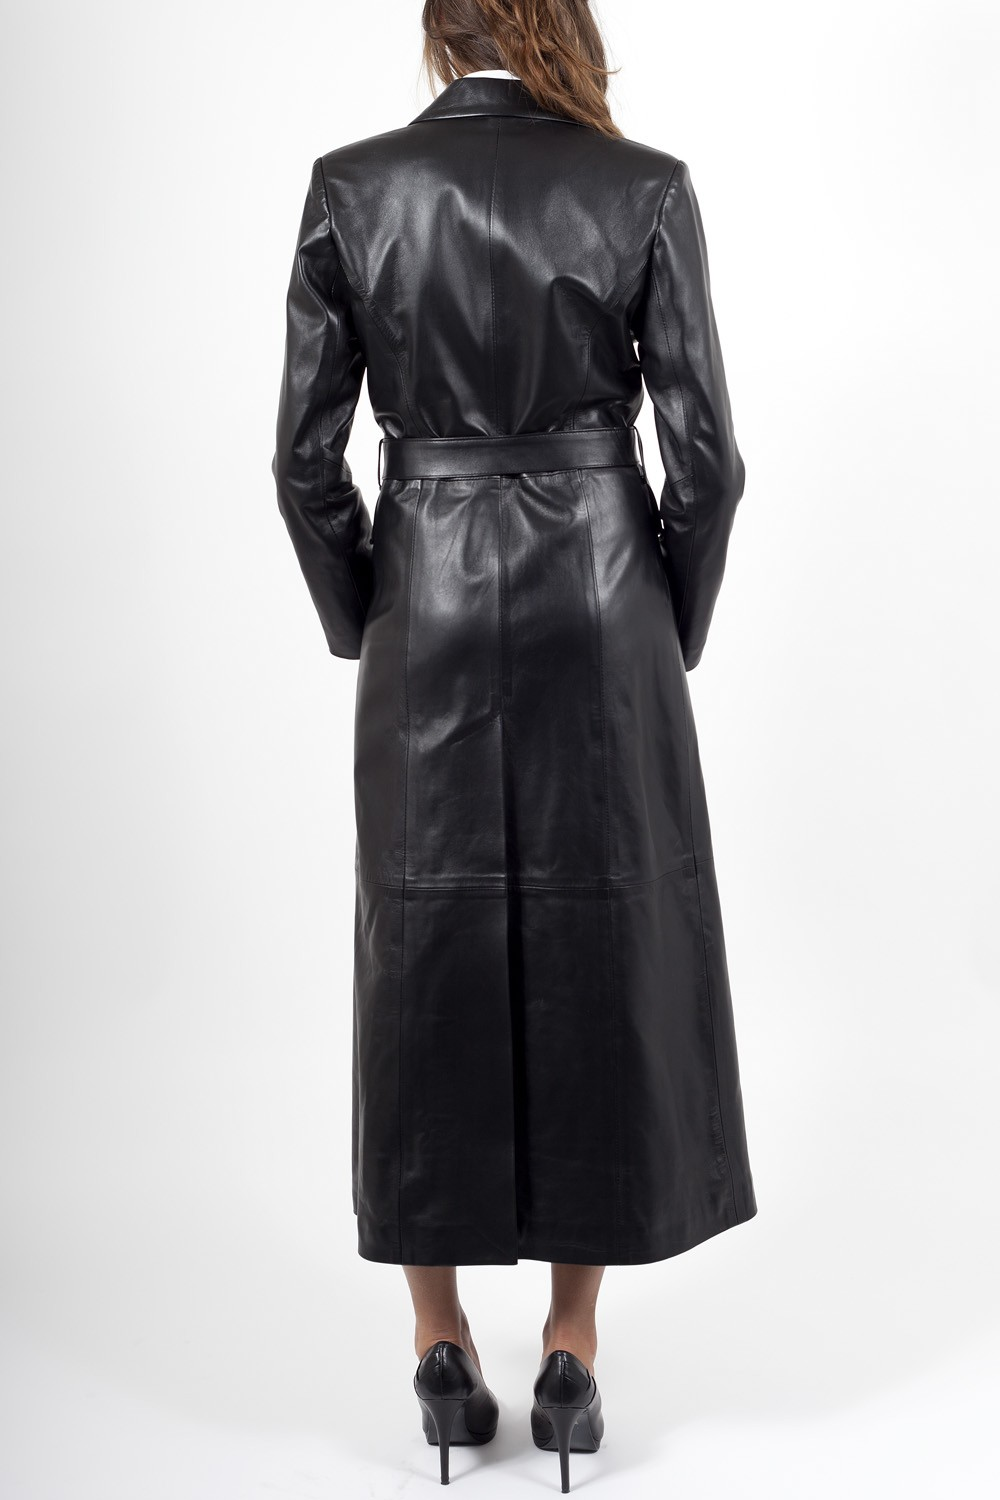 Long leather jacket for women